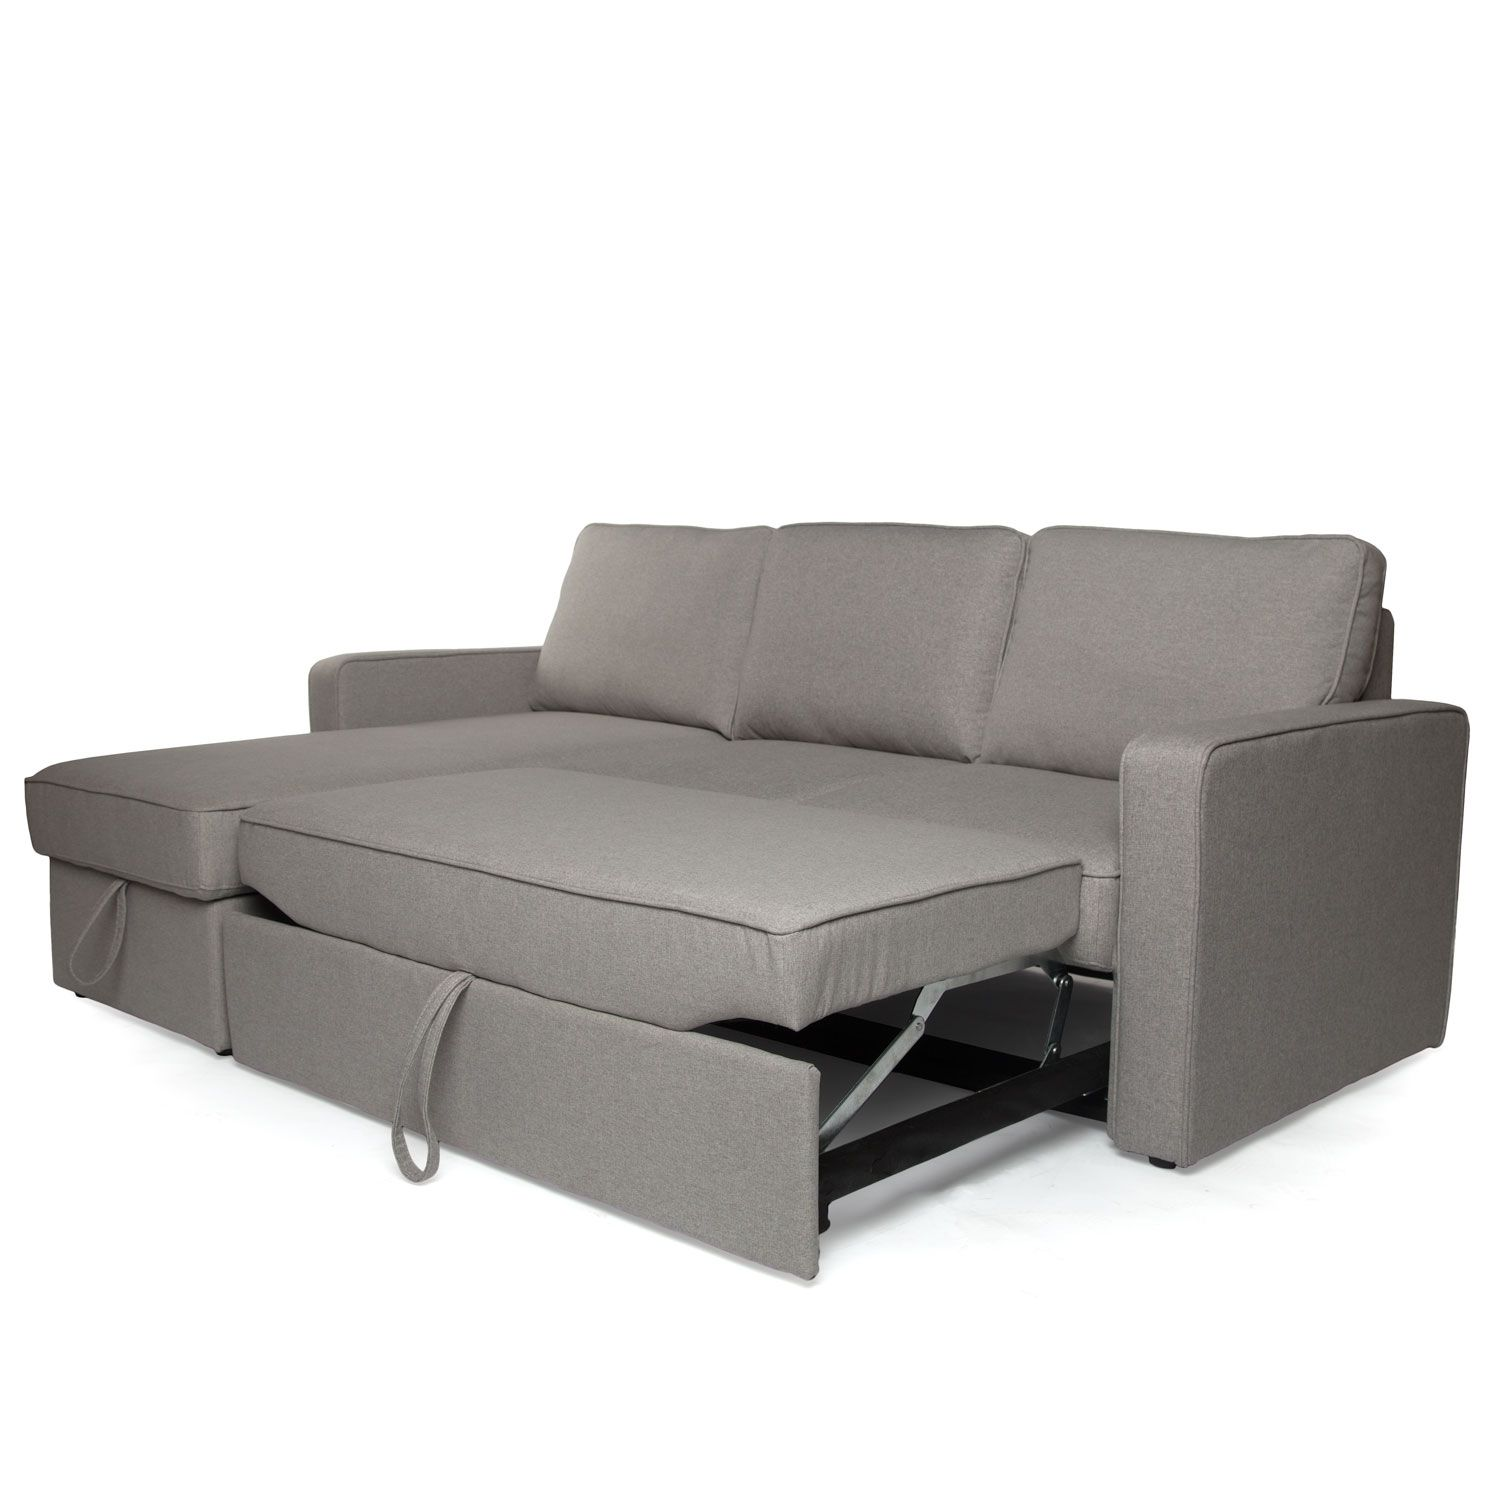 Sectional Sofa Bed With Storage Sofa Bed Sofa Bed With Storage